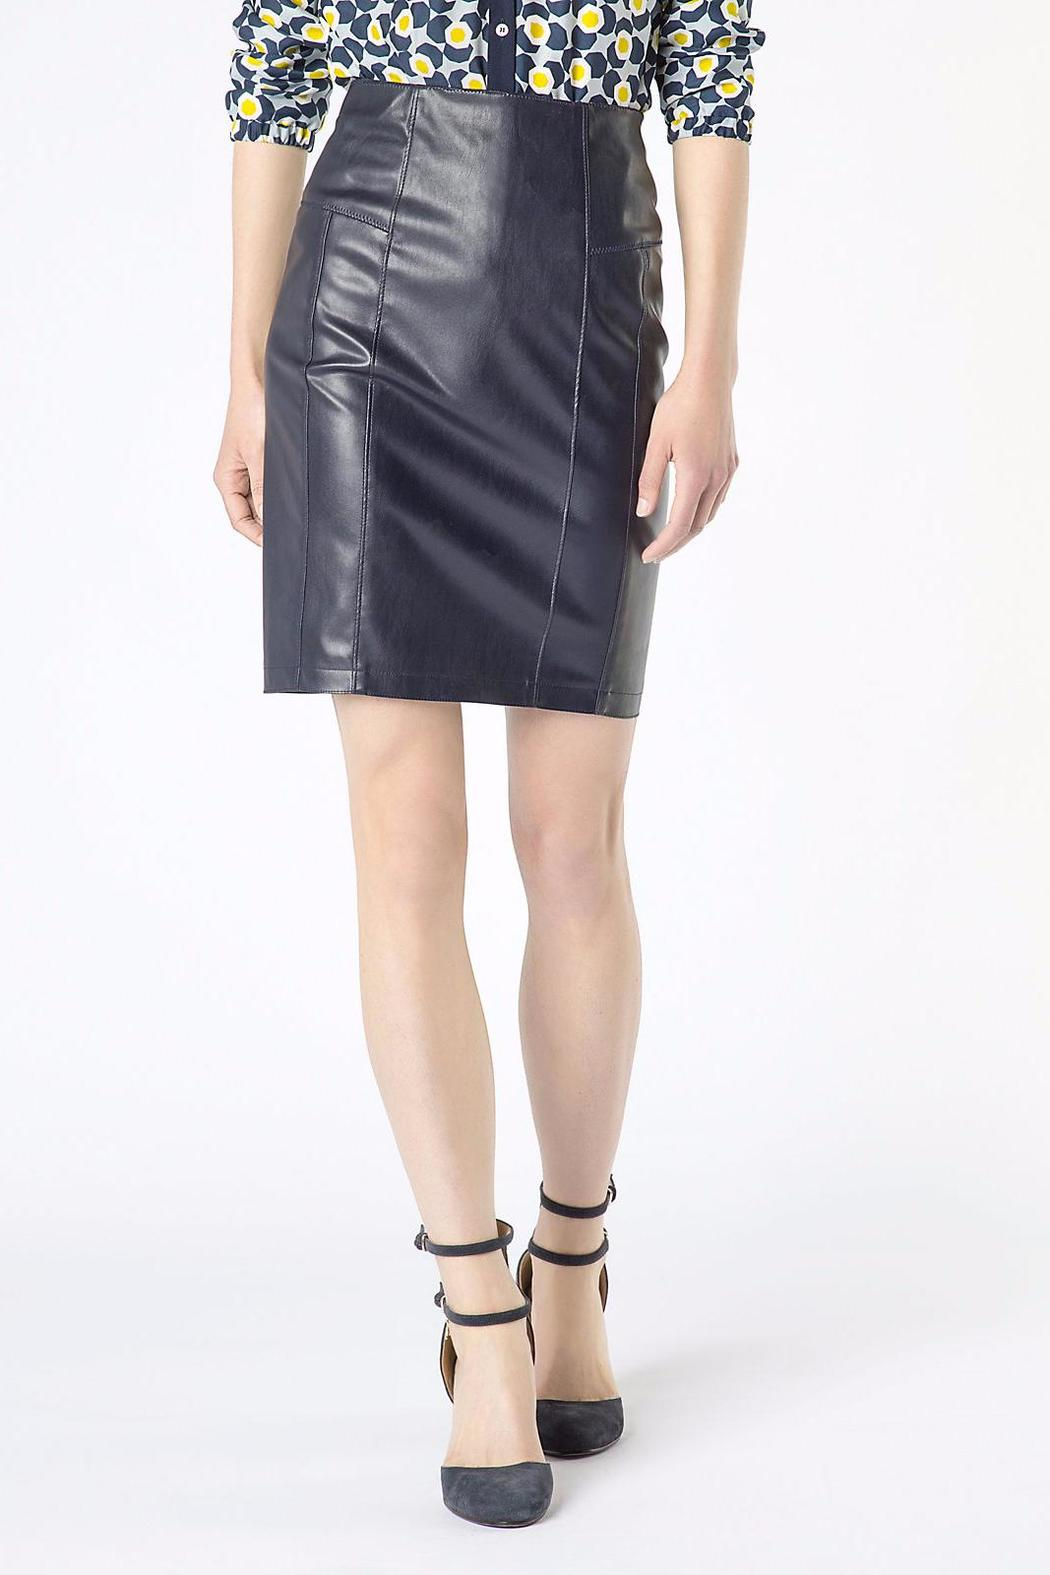 patrizia pepe pencil skirt from netherlands by no56